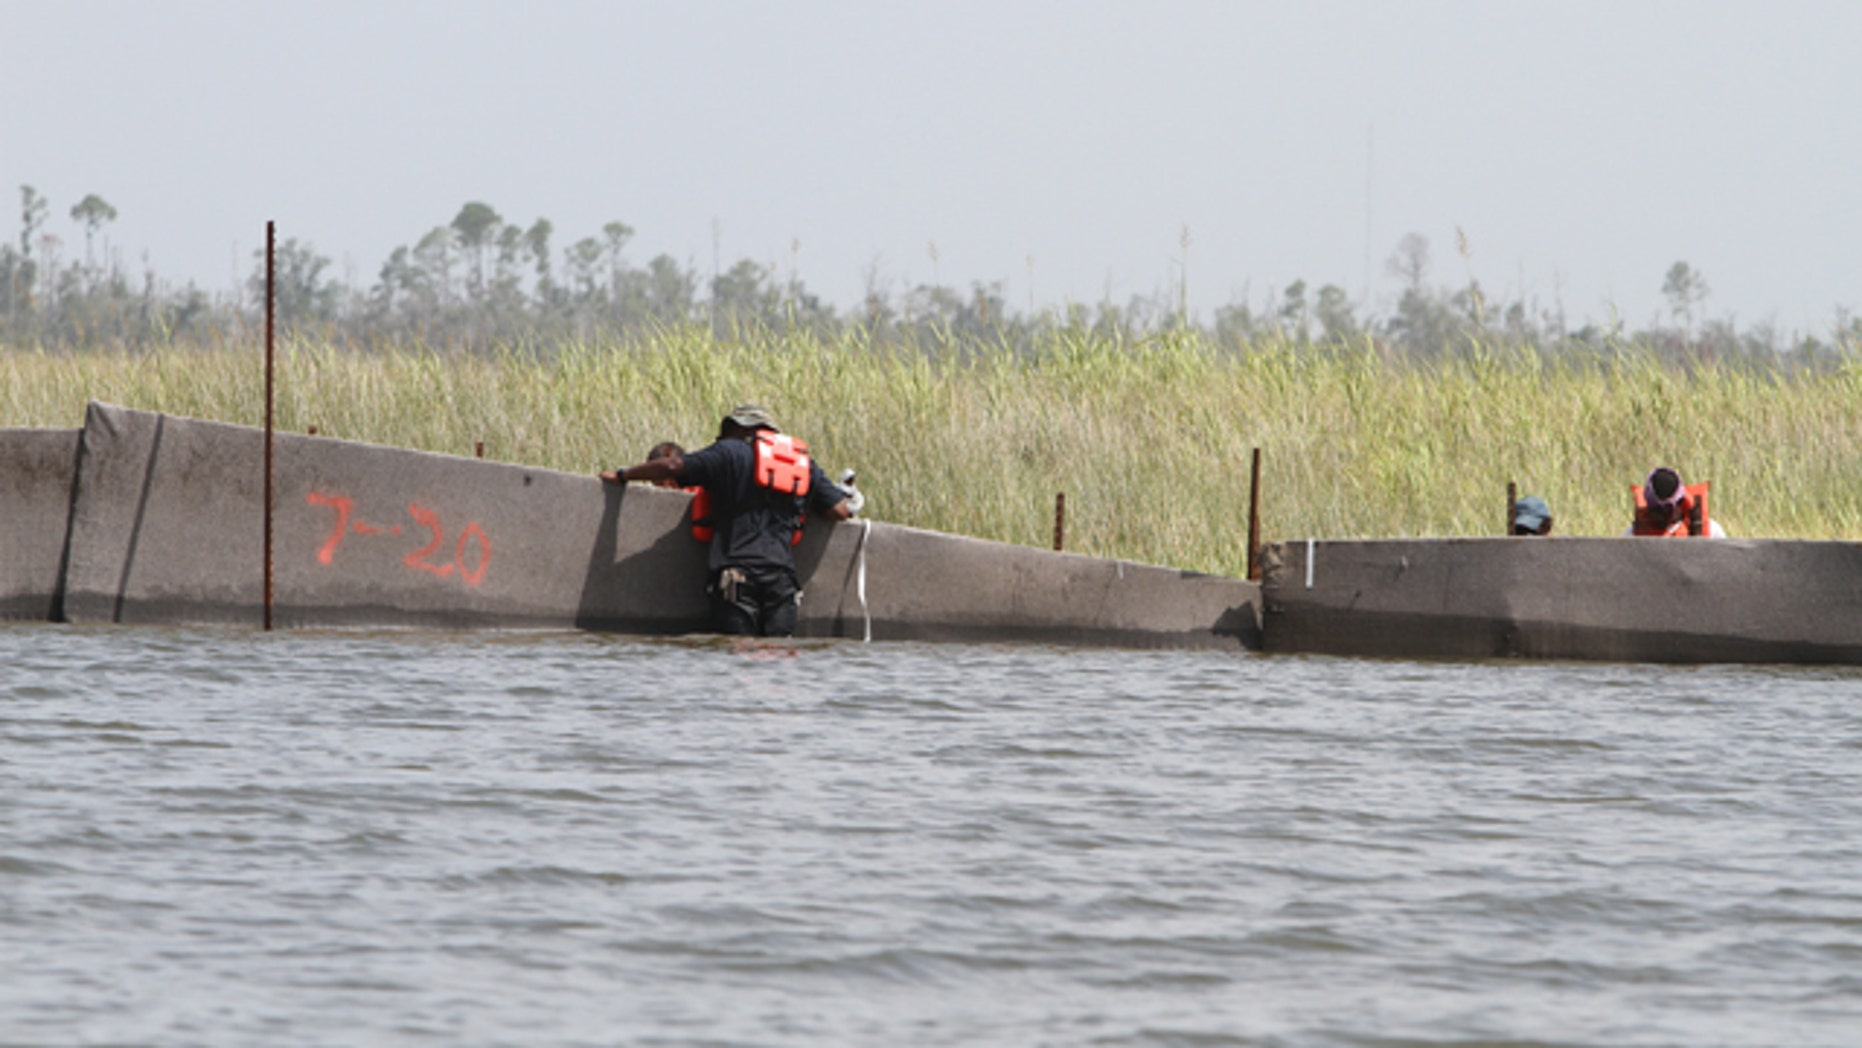 Workers double-check X-Tex fencing in the marsh along Campbell Outside Bayou near the Pearl River in Hancock County, Miss., on Friday, July 23, 2010. Put in place by contractor Environmental Protection Systems, the fencing is being used as a containment to protect Mississippi marsh areas and shorelines from the oil spill in the Gulf. Workers along the Mississippi Gulf Coast are securing oil spill protection systems ahead of the expected arrival of Tropical Storm Bonnie. (AP Photo/The Sun Herald, James Edward Bates) TV OUT; ONLINE OUT; MANDATORY CREDIT: MISSISSIPPI PRESS OUT